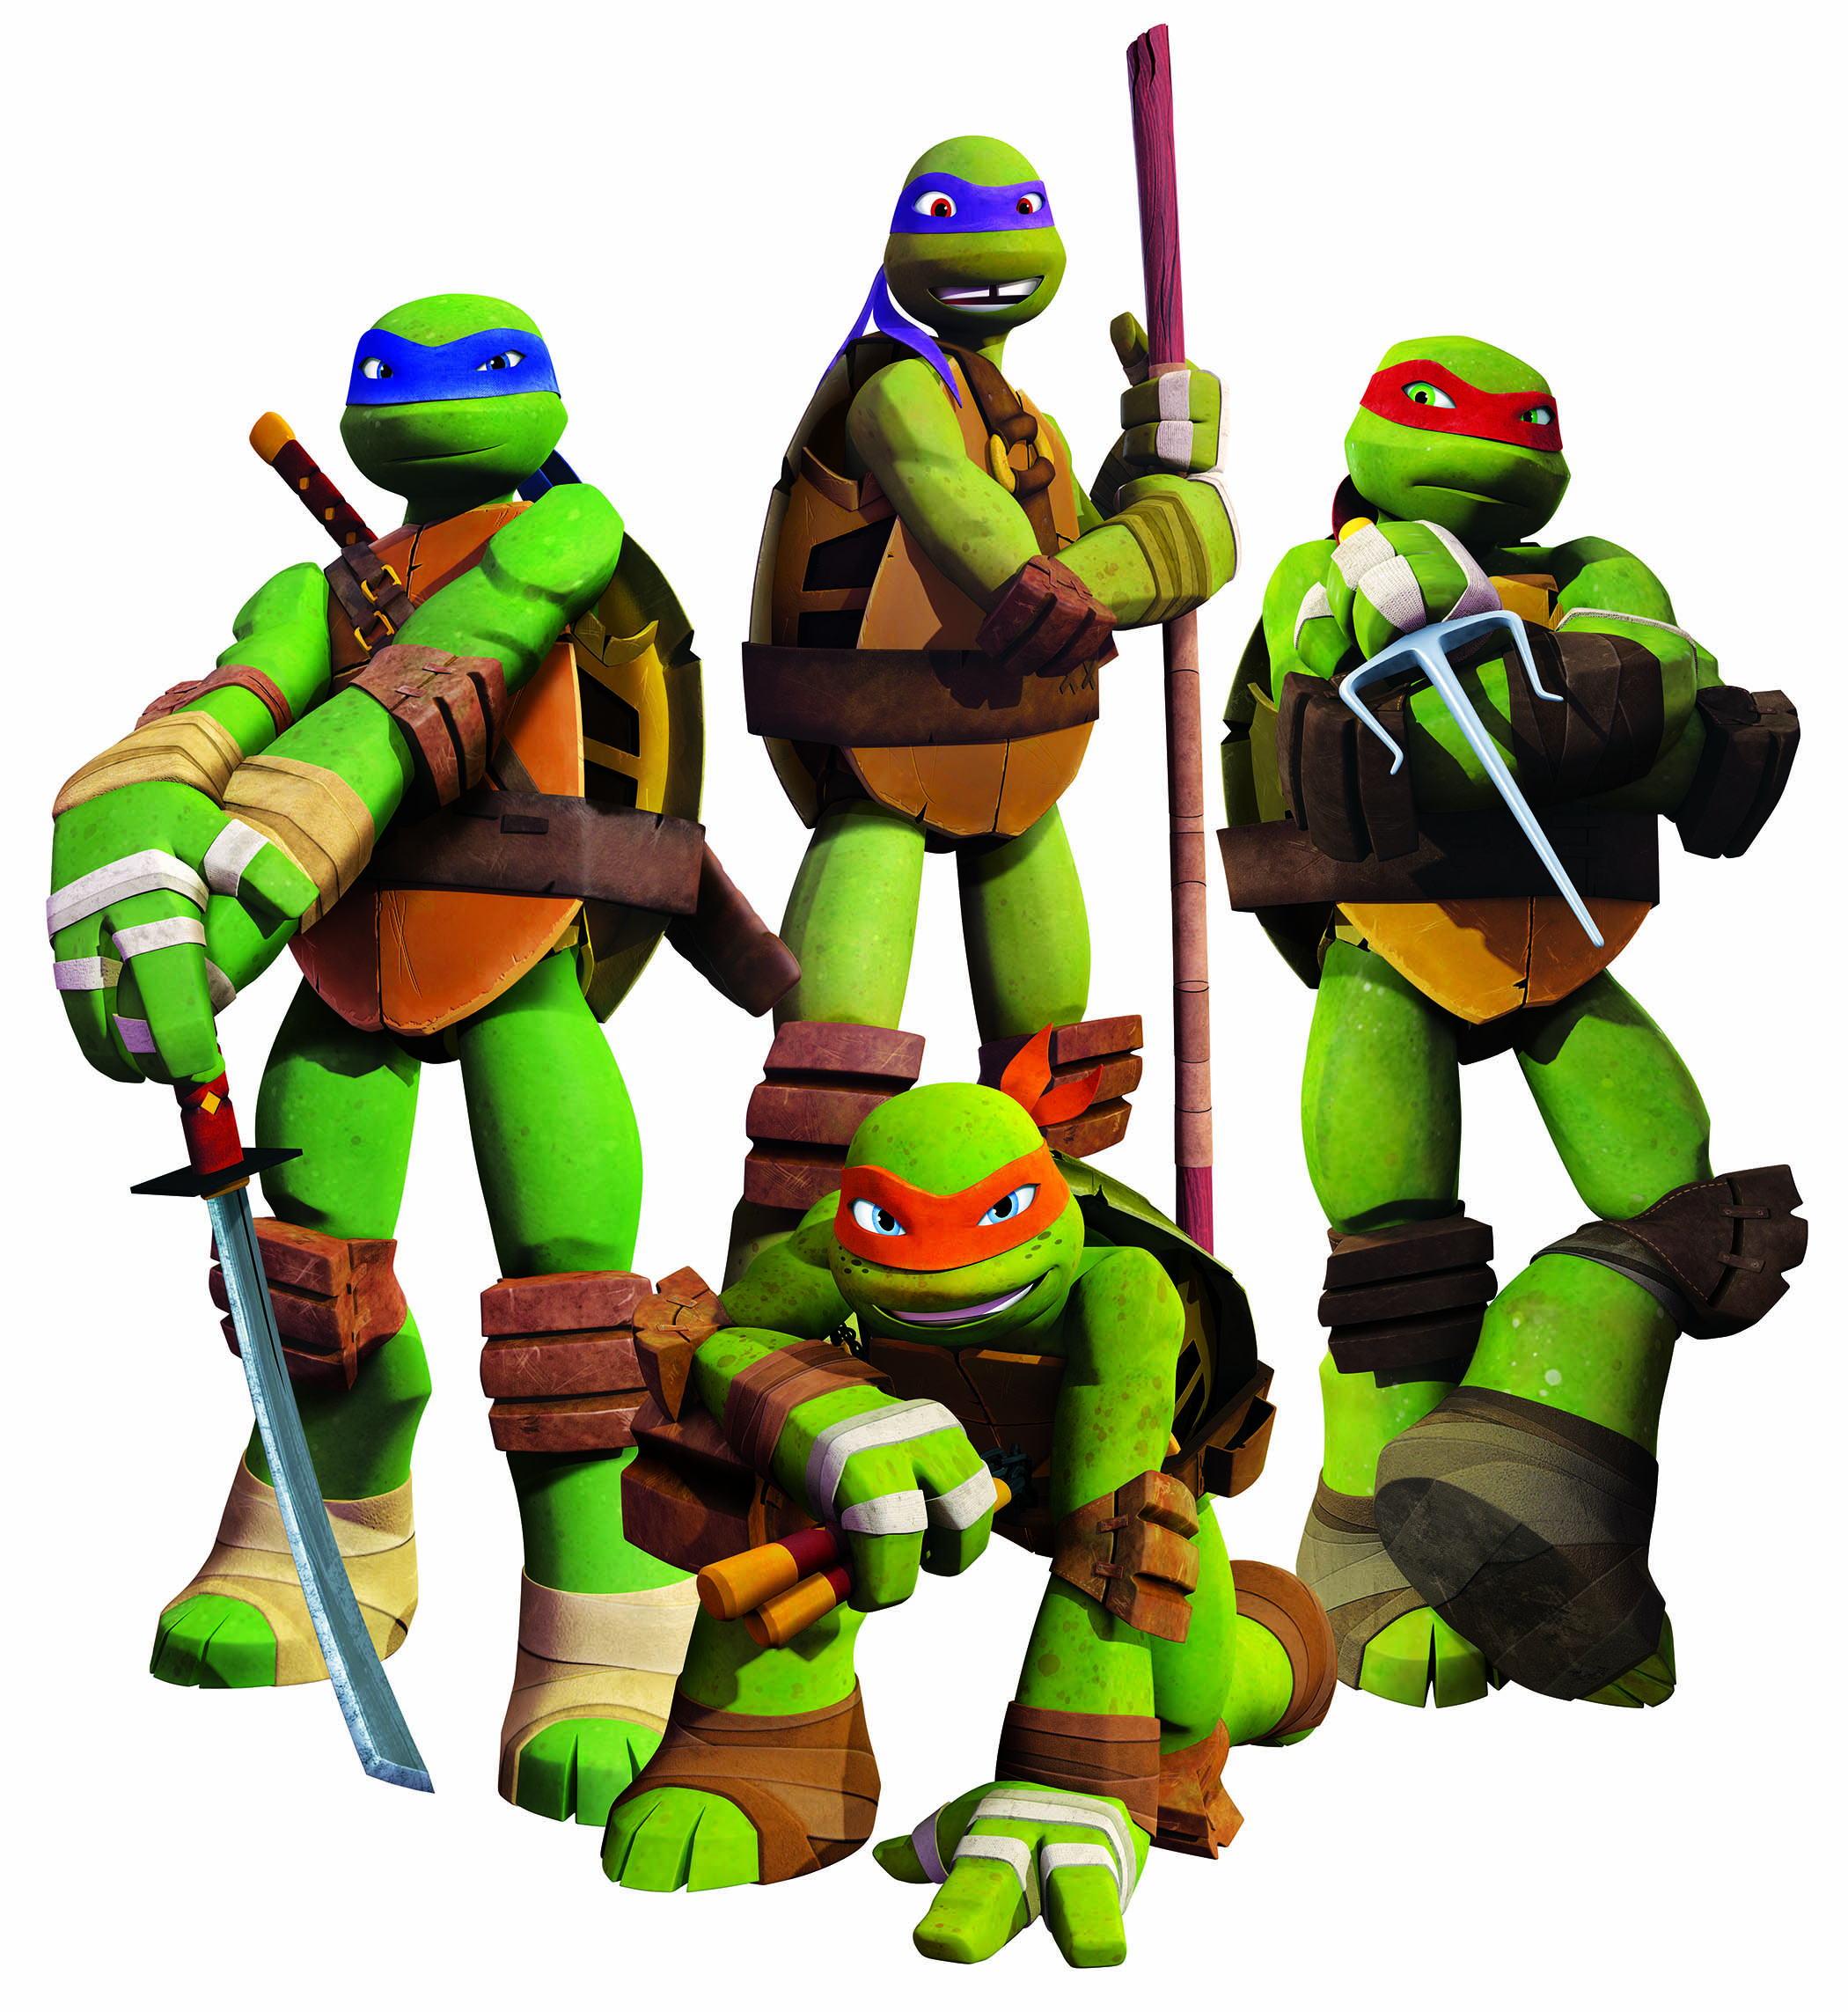 This is a picture of Playful Teenage Mutant Ninja Turtle Images